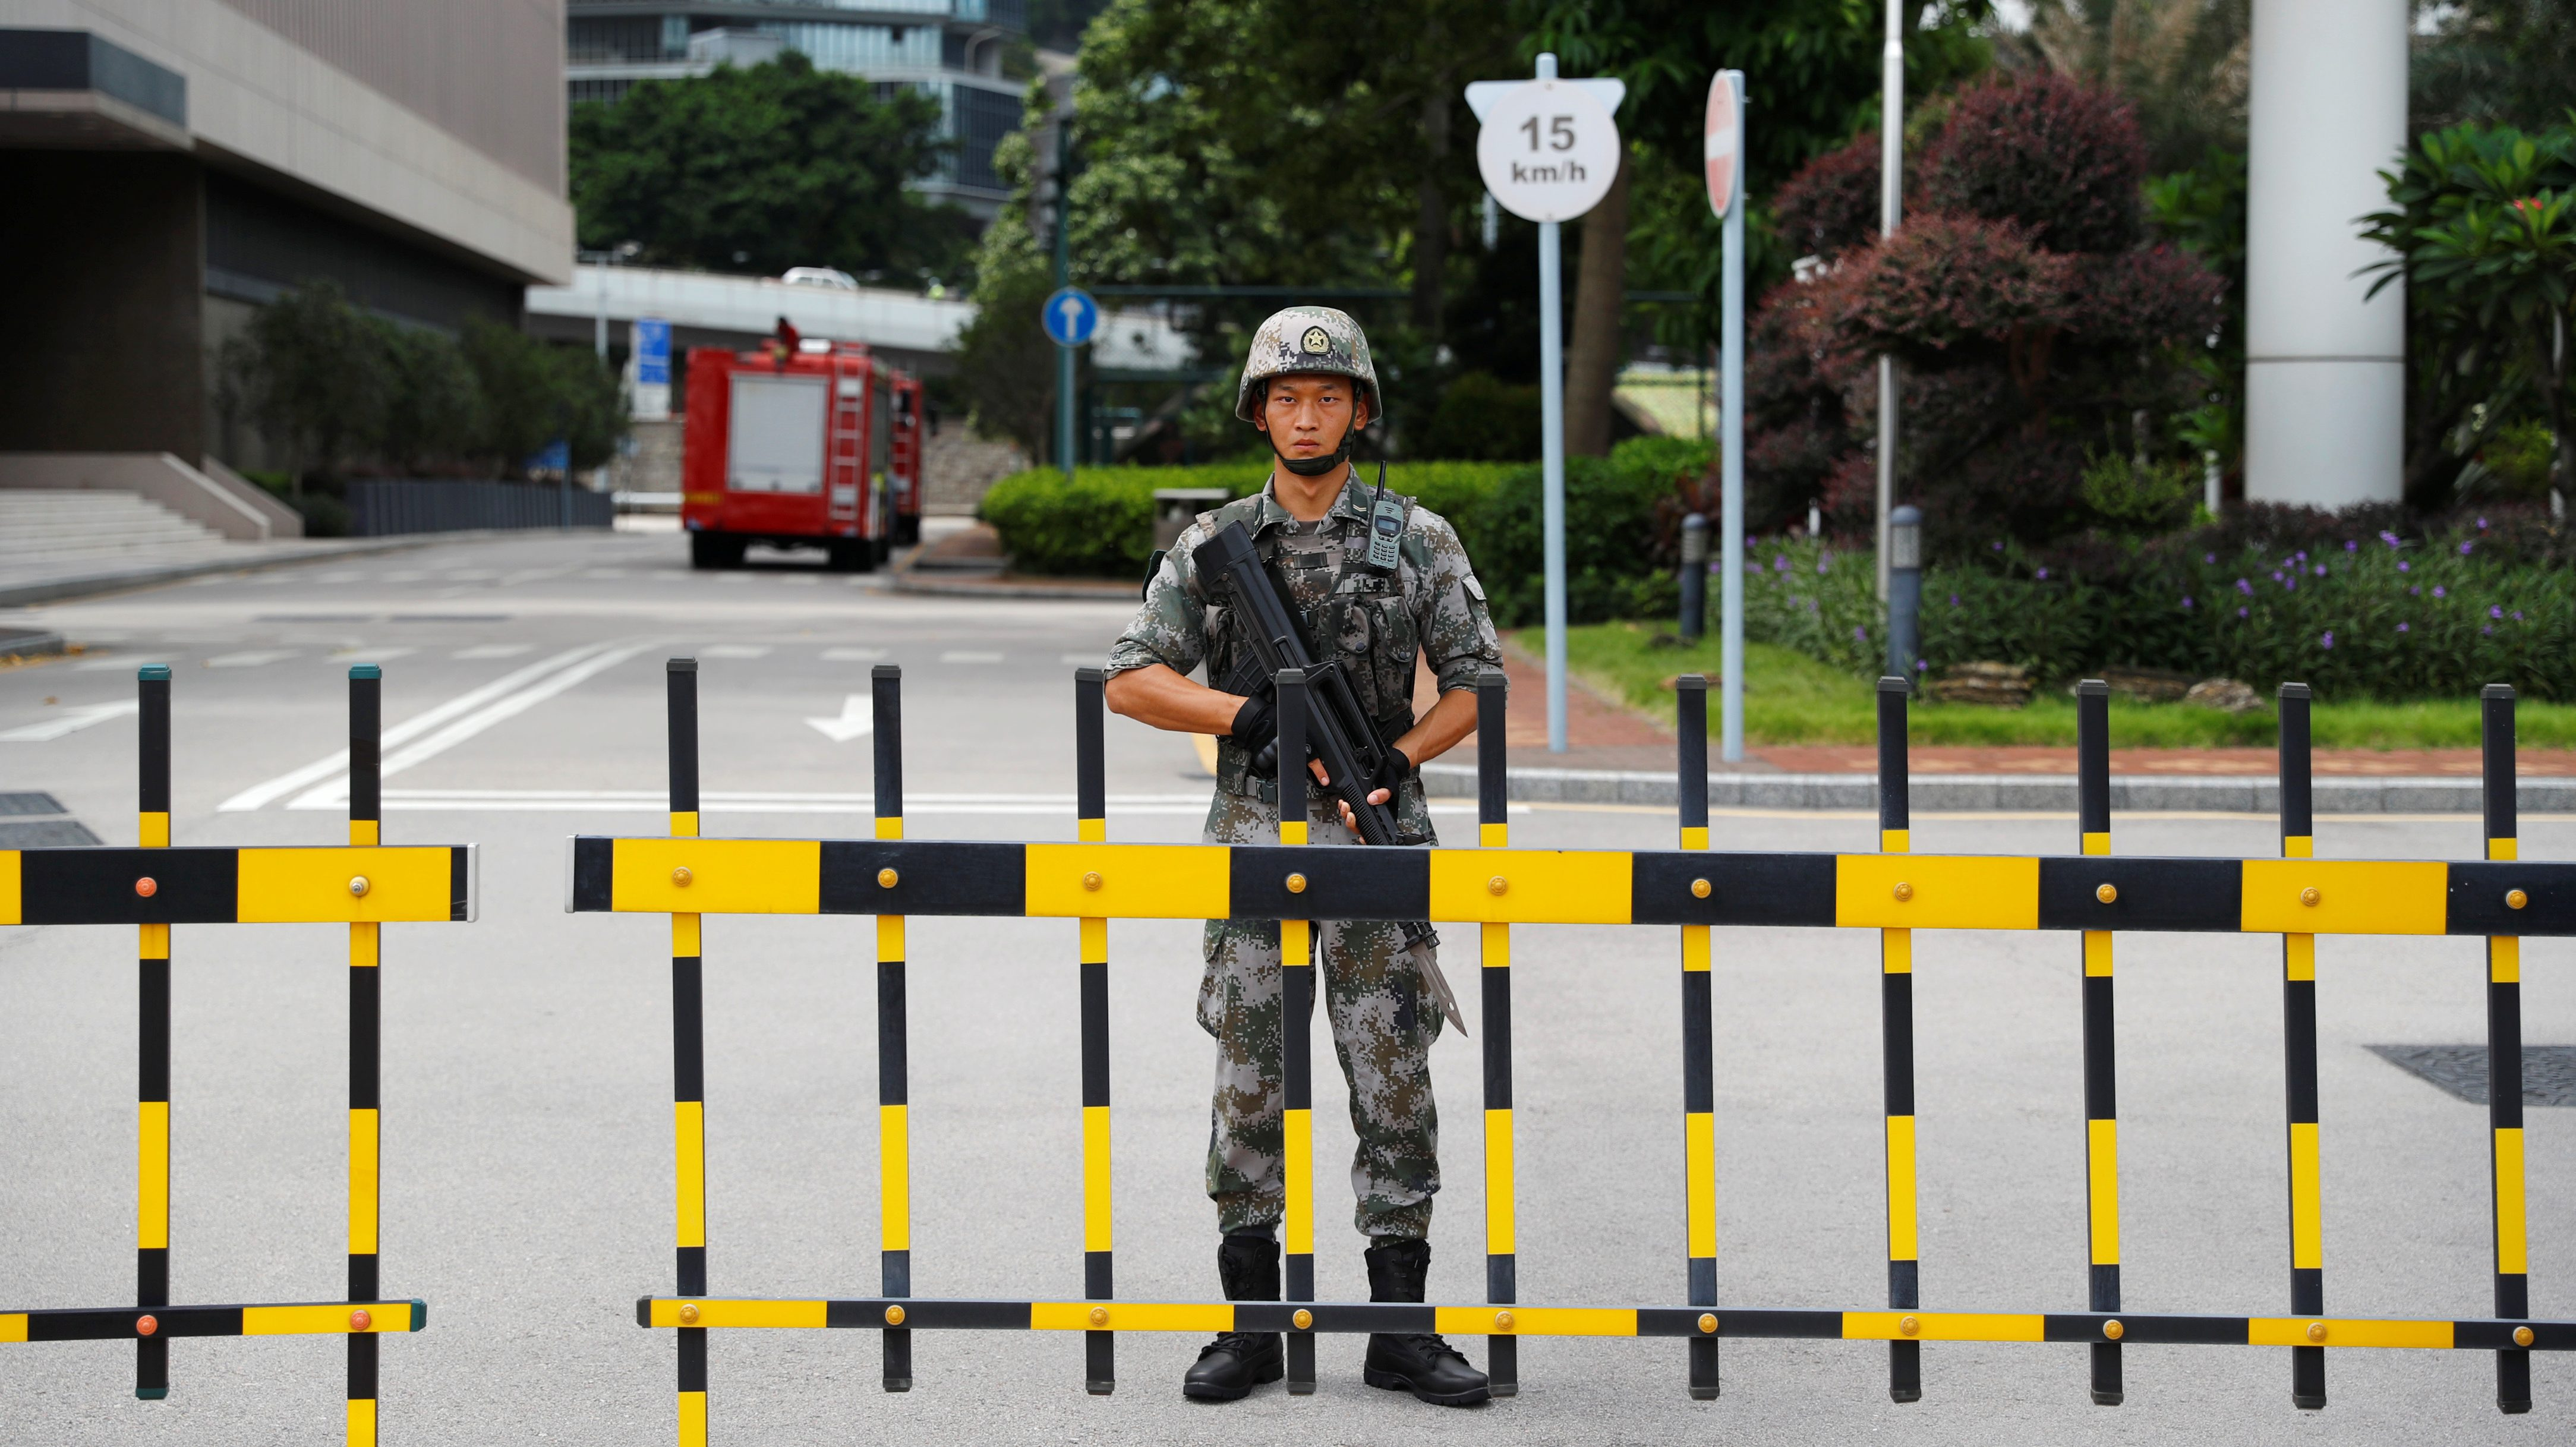 A Chinese People's Liberation Army (PLA) soldier guards the entrance to the PLA Hong Kong Garrison headquarters in the Central Business District in Hong Kong, China, August 29, 2019. REUTERS/Anushree Fadnavis - RC1A28D50FF0